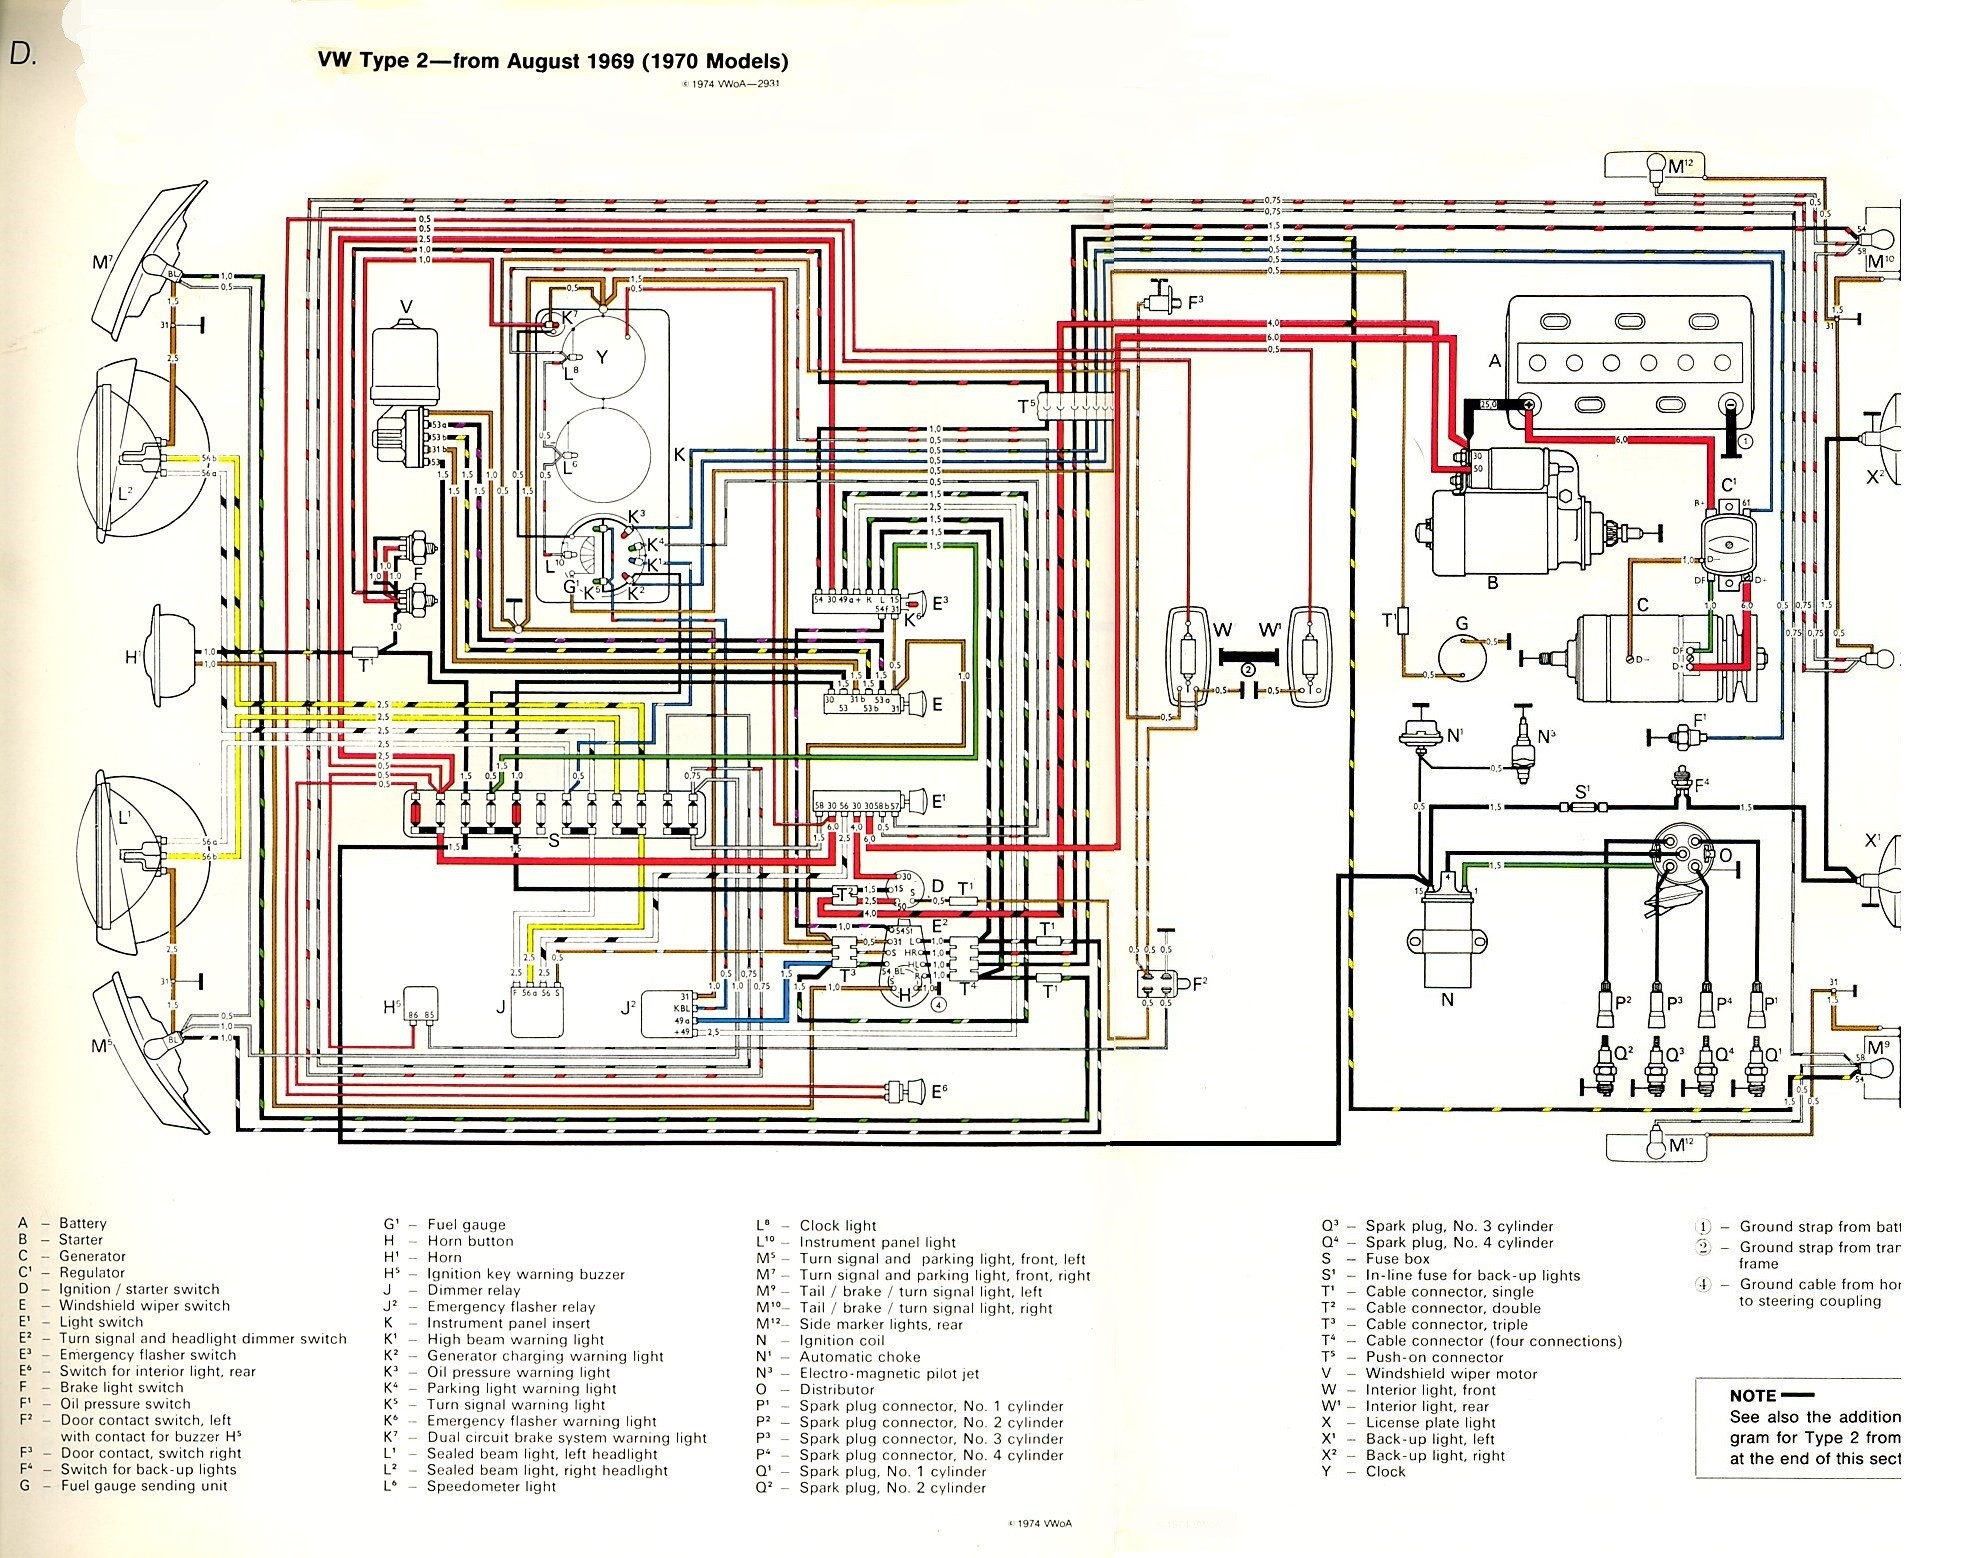 1981 Chevy Truck Fuse Box Diagram 70 Camaro Fuse Box Diagram Another Blog About Wiring Diagram • Of 1981 Chevy Truck Fuse Box Diagram